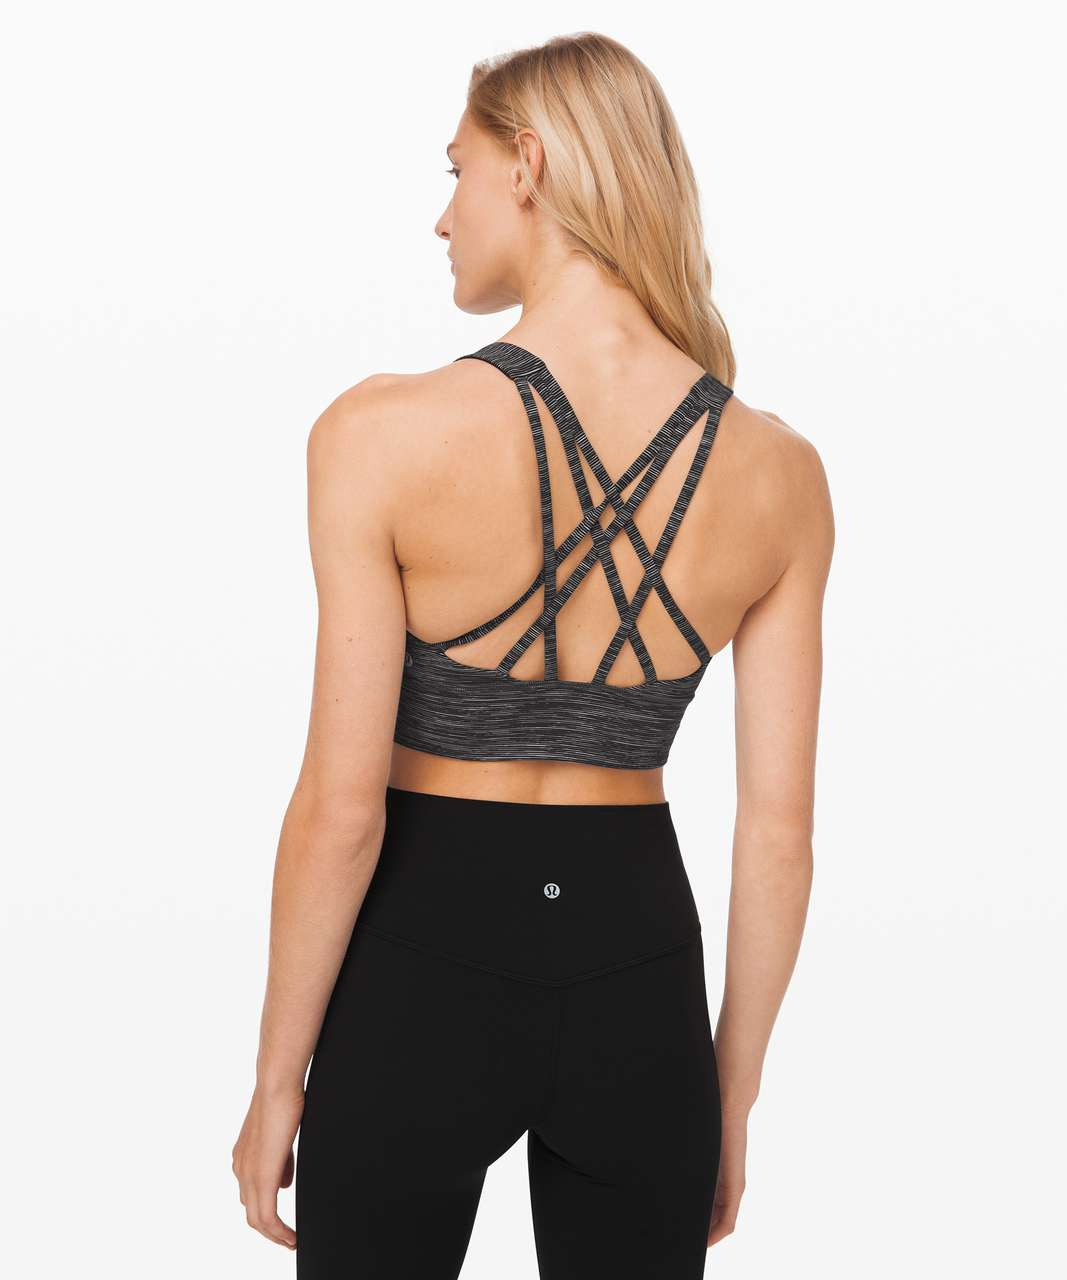 Lululemon Free To Be Serene Bra Long Line *Light Support, C/D Cup (Online Only) - Wee Are From Space Dark Carbon Ice Grey